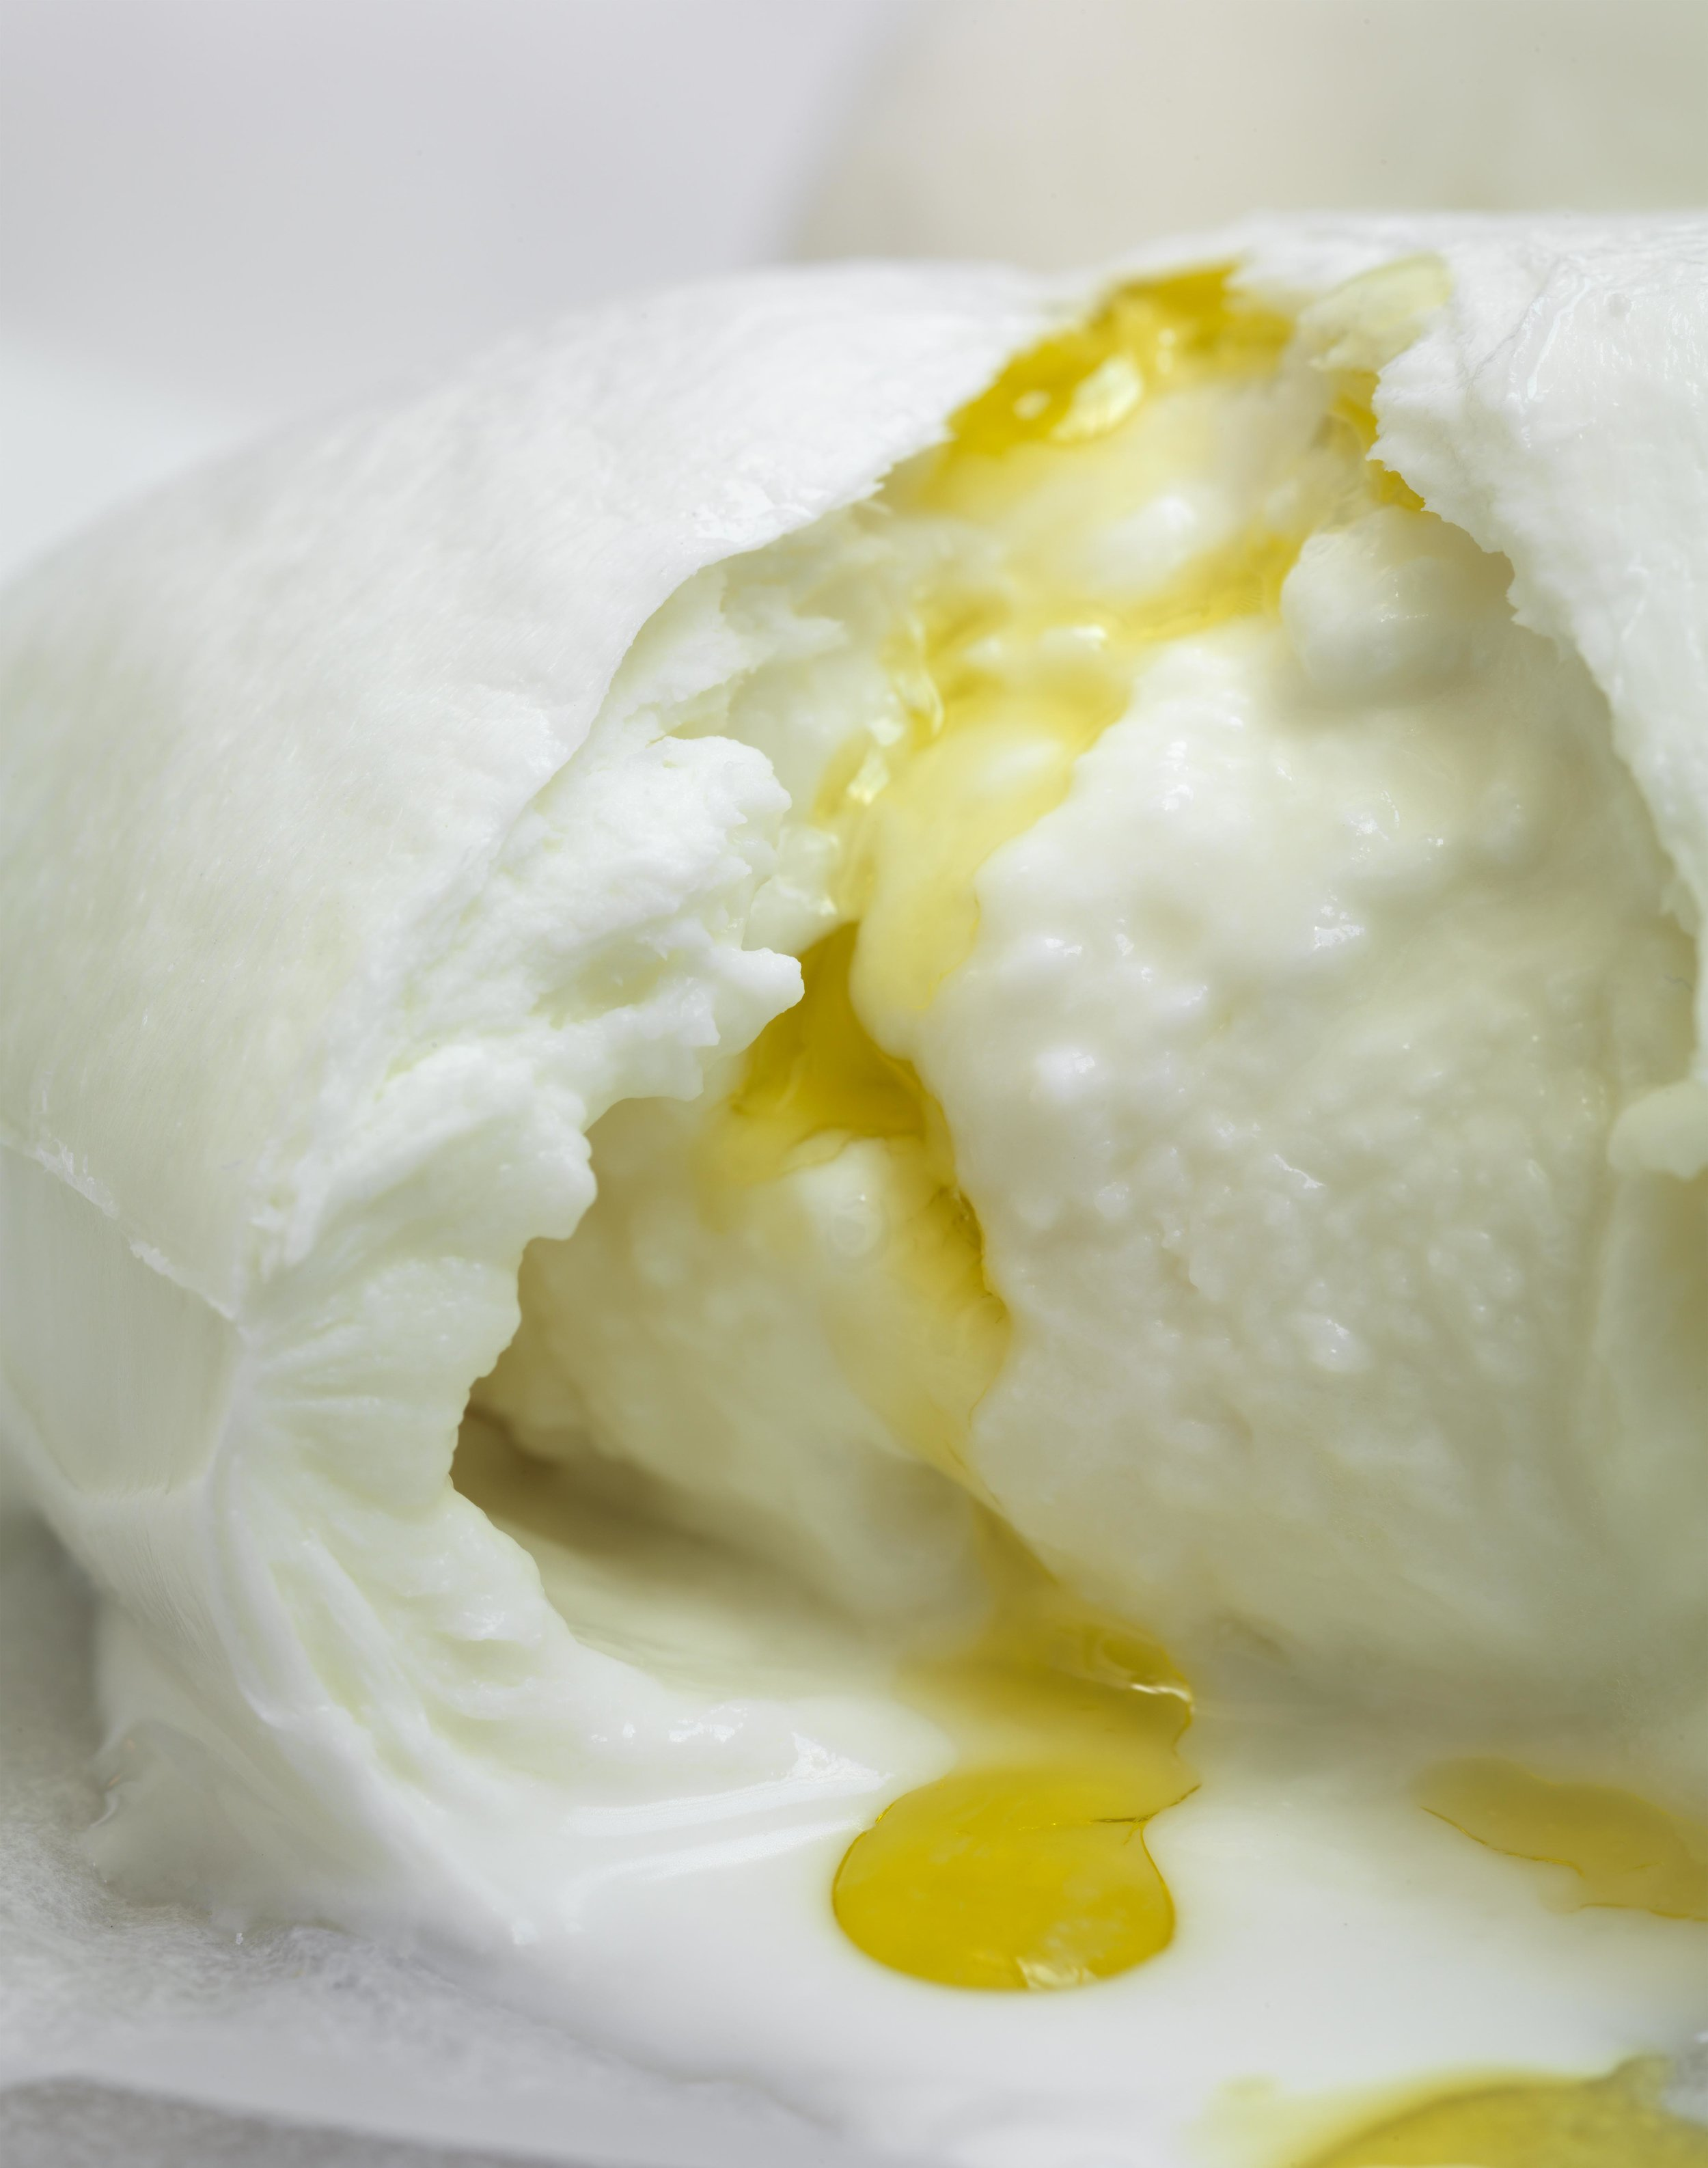 Burrata, I love these silky moist textures